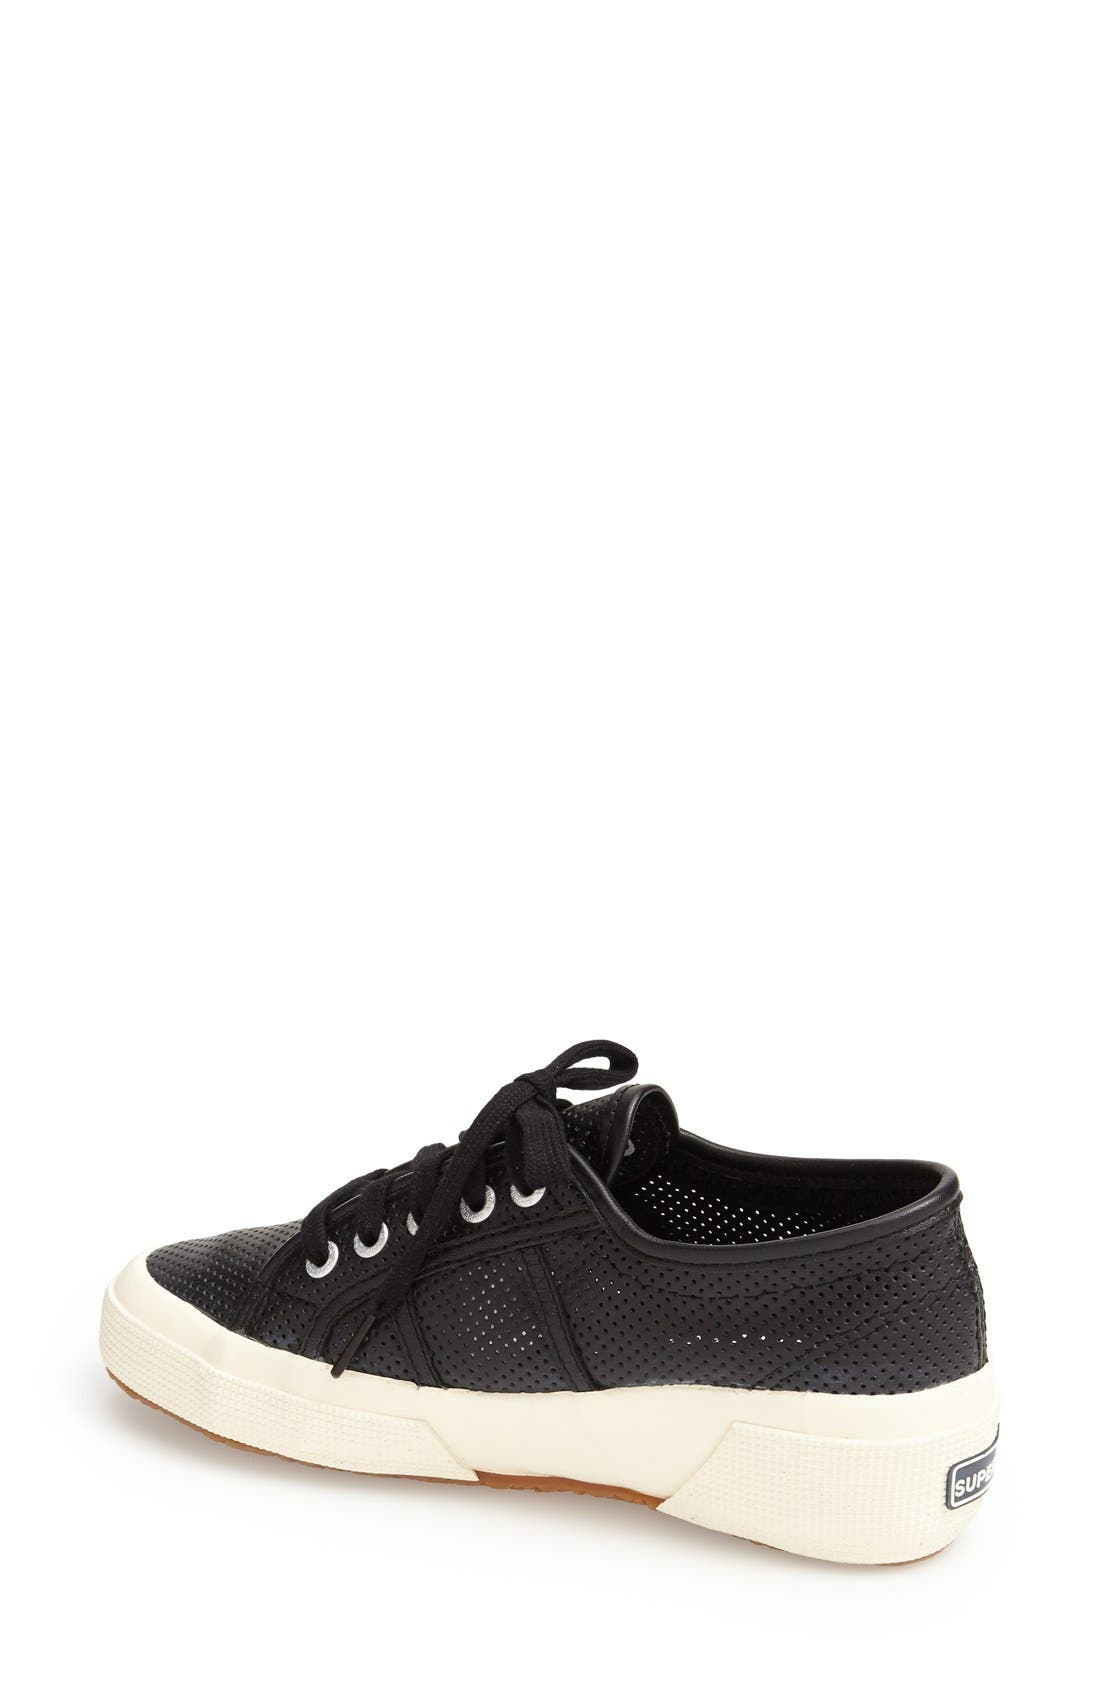 Alternate Image 2  - Superga 'Perforated Cotu' Leather Sneaker (Women)